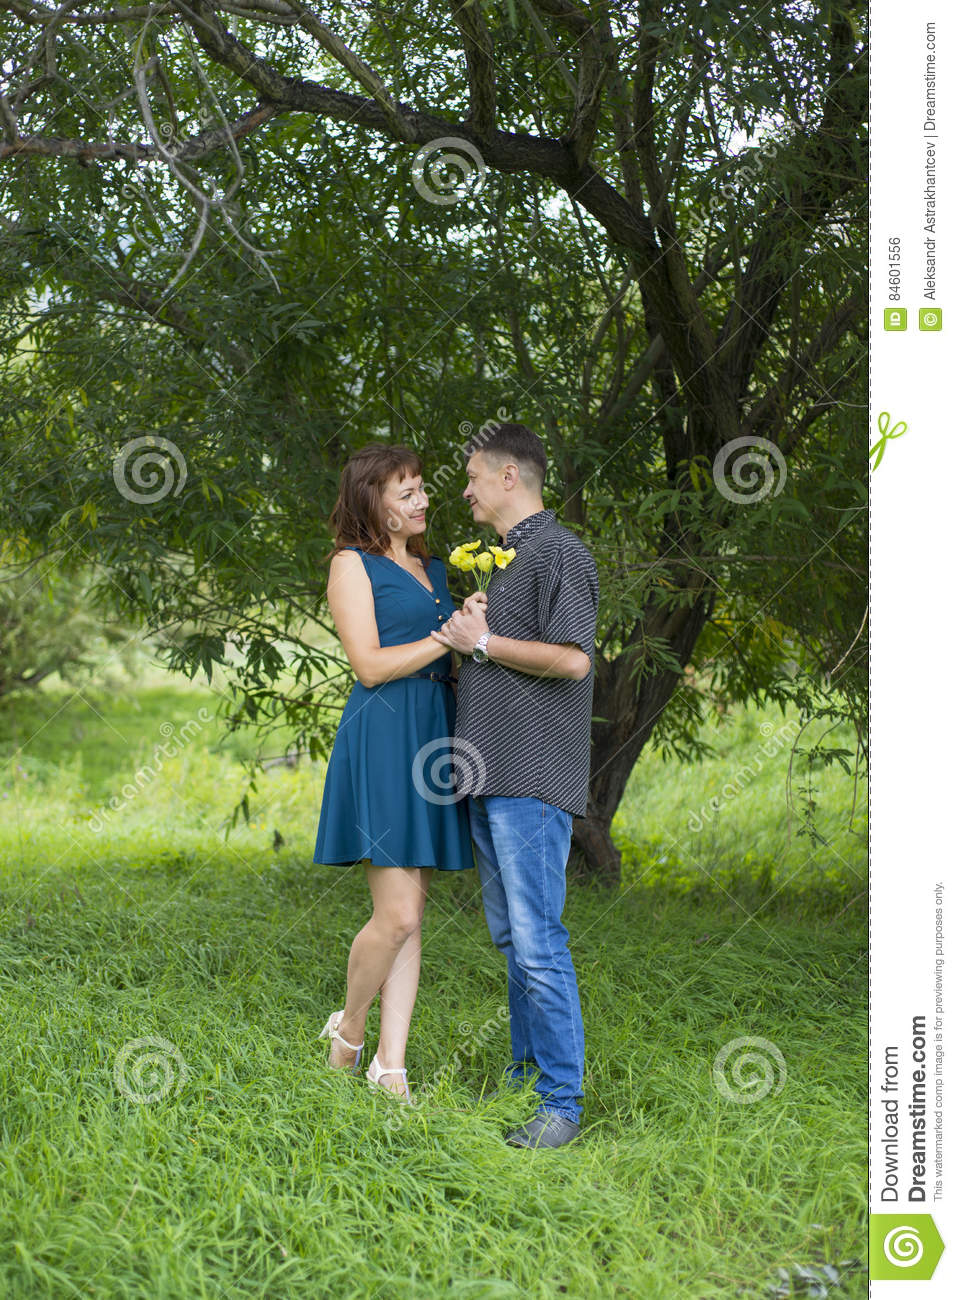 Aug 2018.. dating and relationship expert at dating site WhatsYourPrice.com, tells.